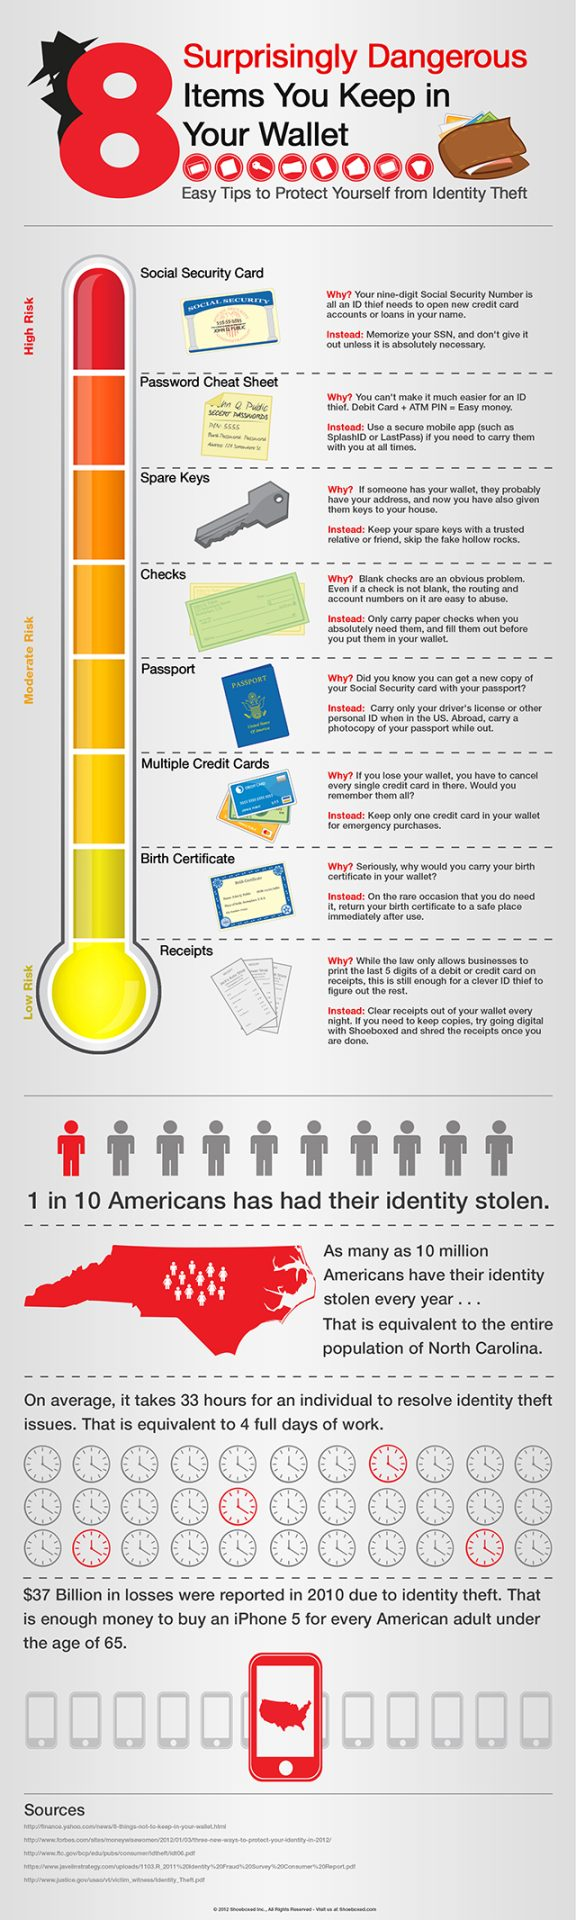 Identity Theft Protection - Shoeboxed Infographic